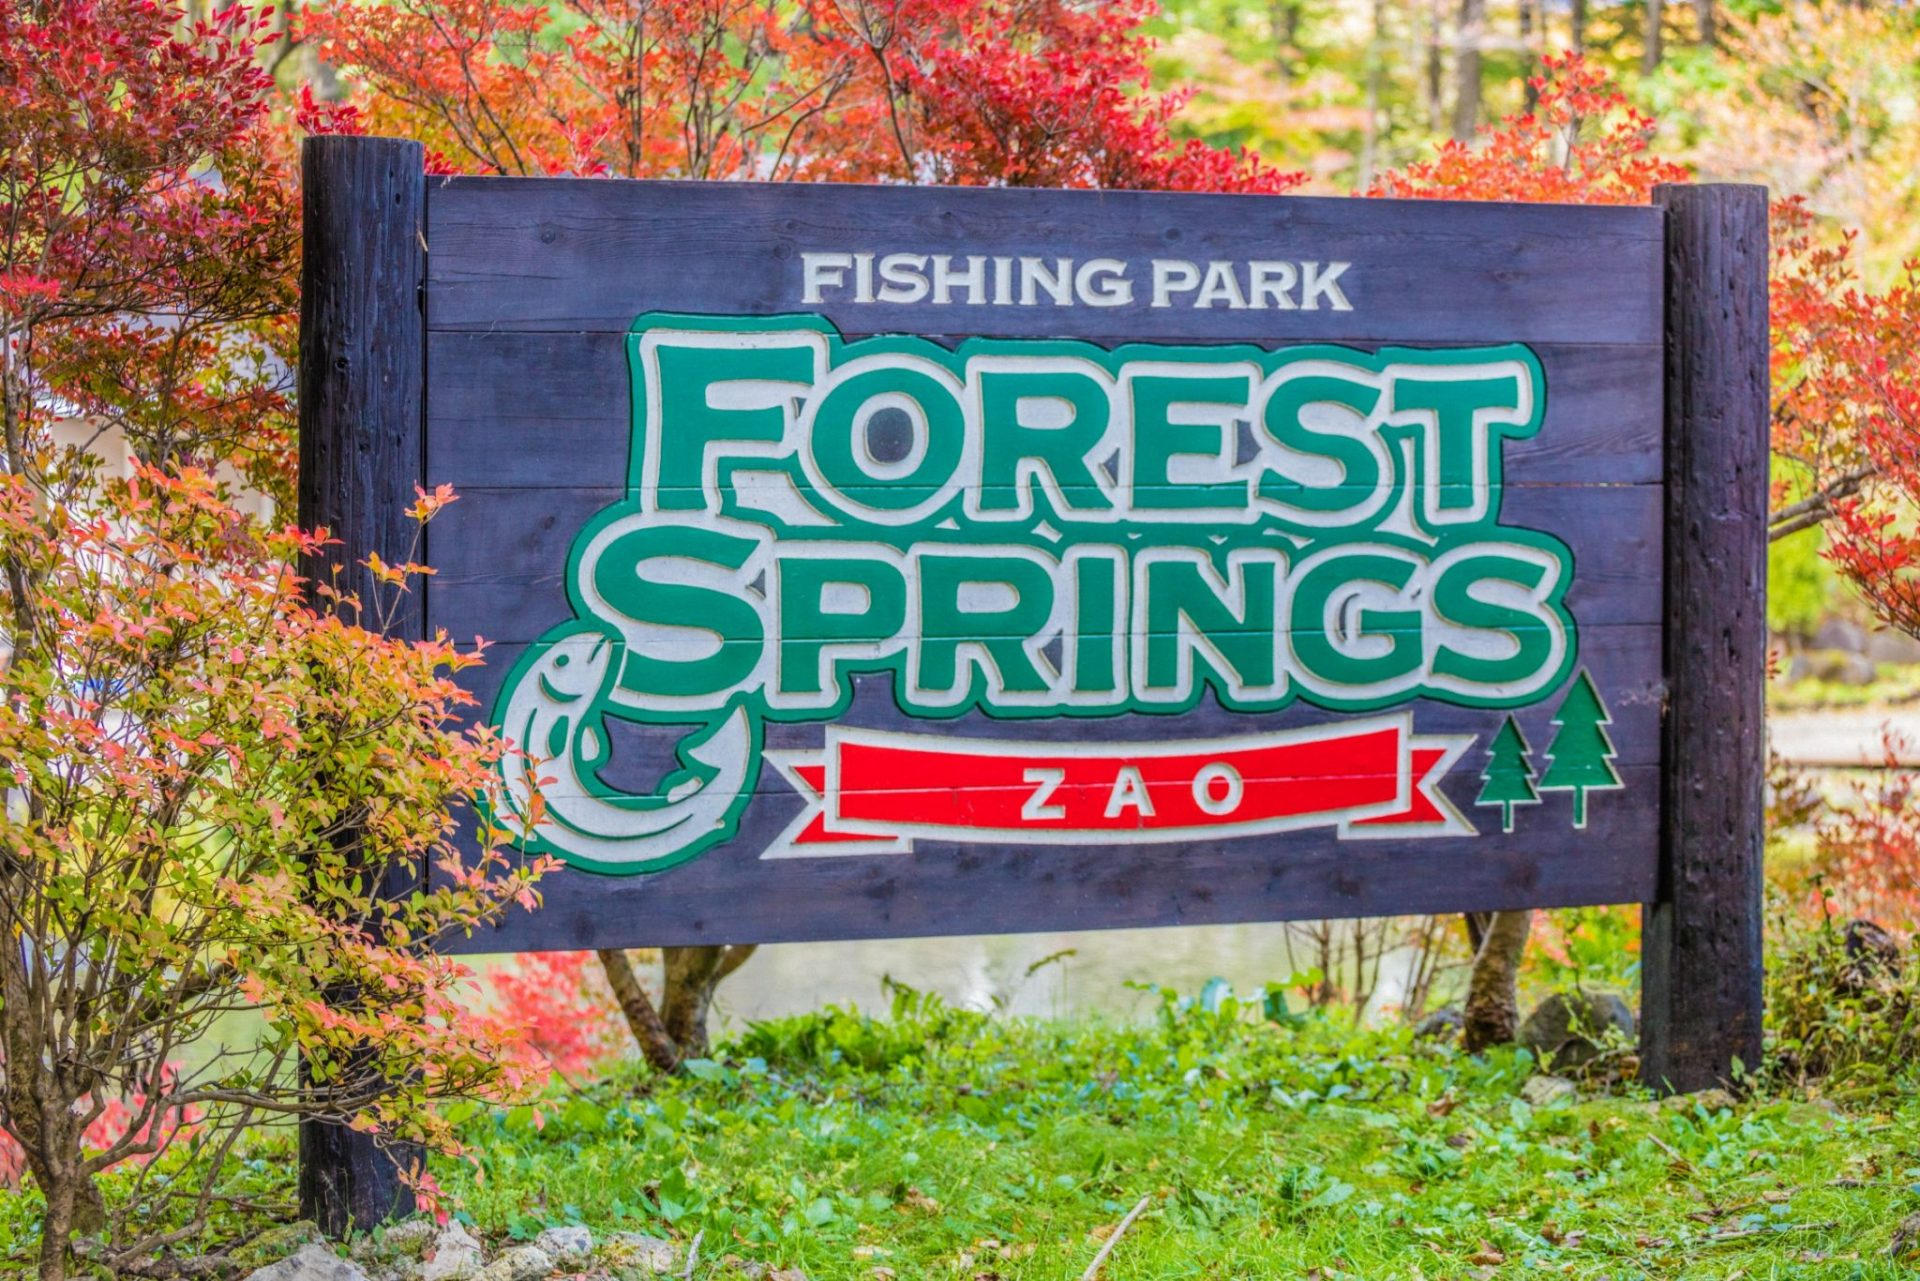 Zao Forest Springs